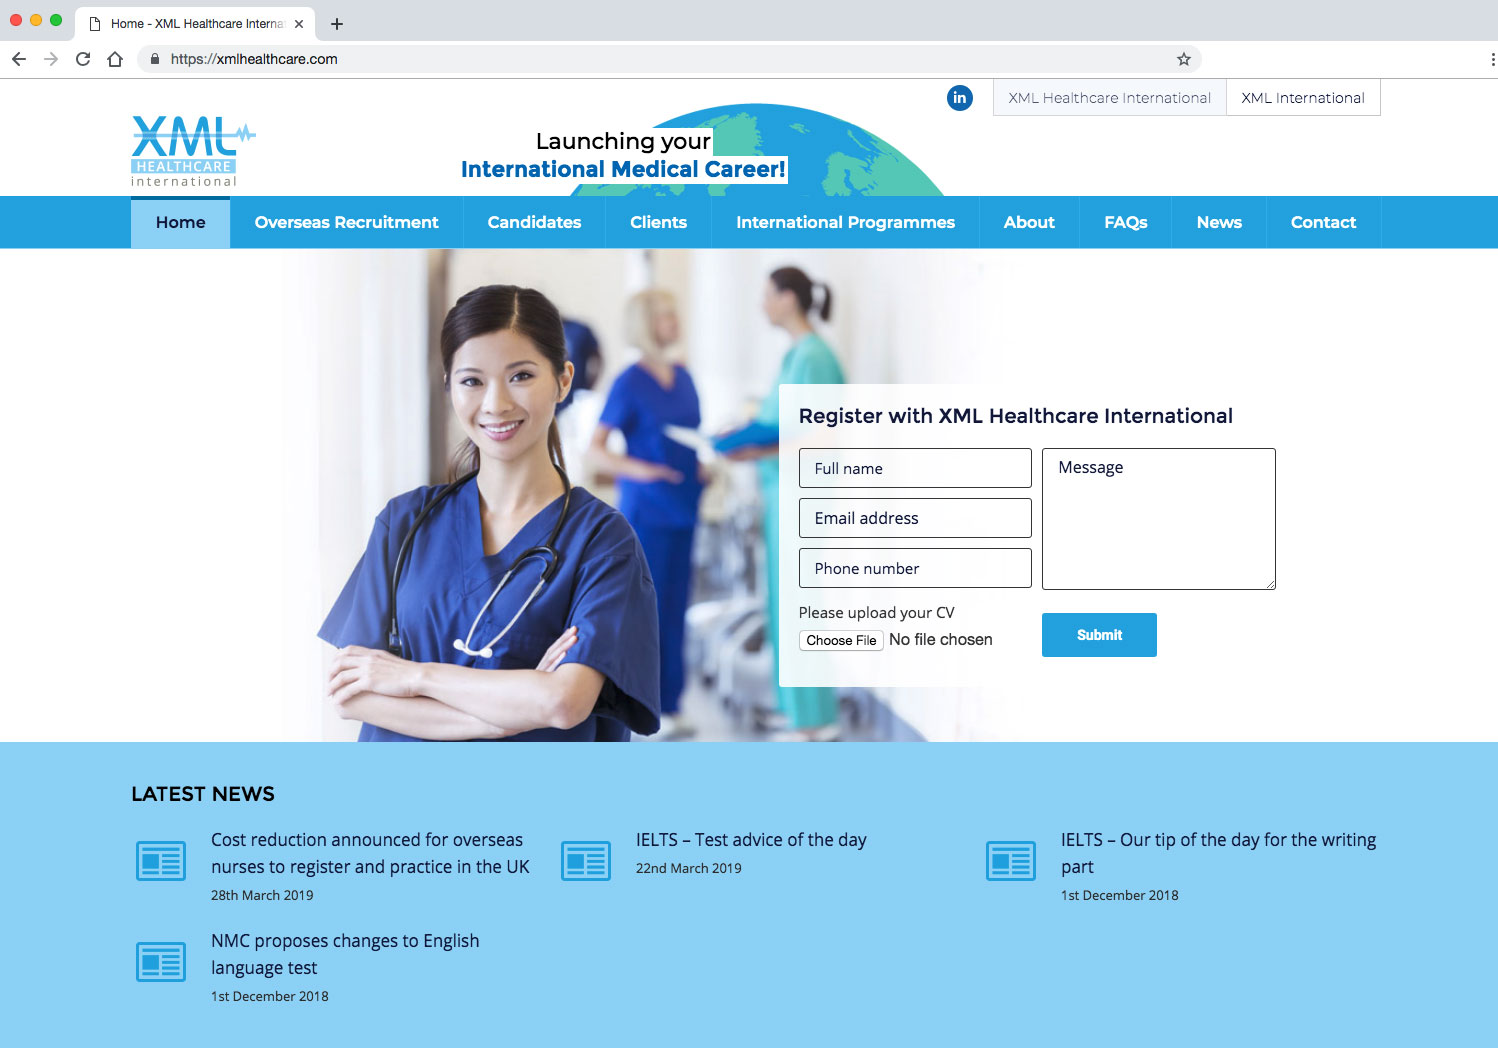 XML Healthcare home page